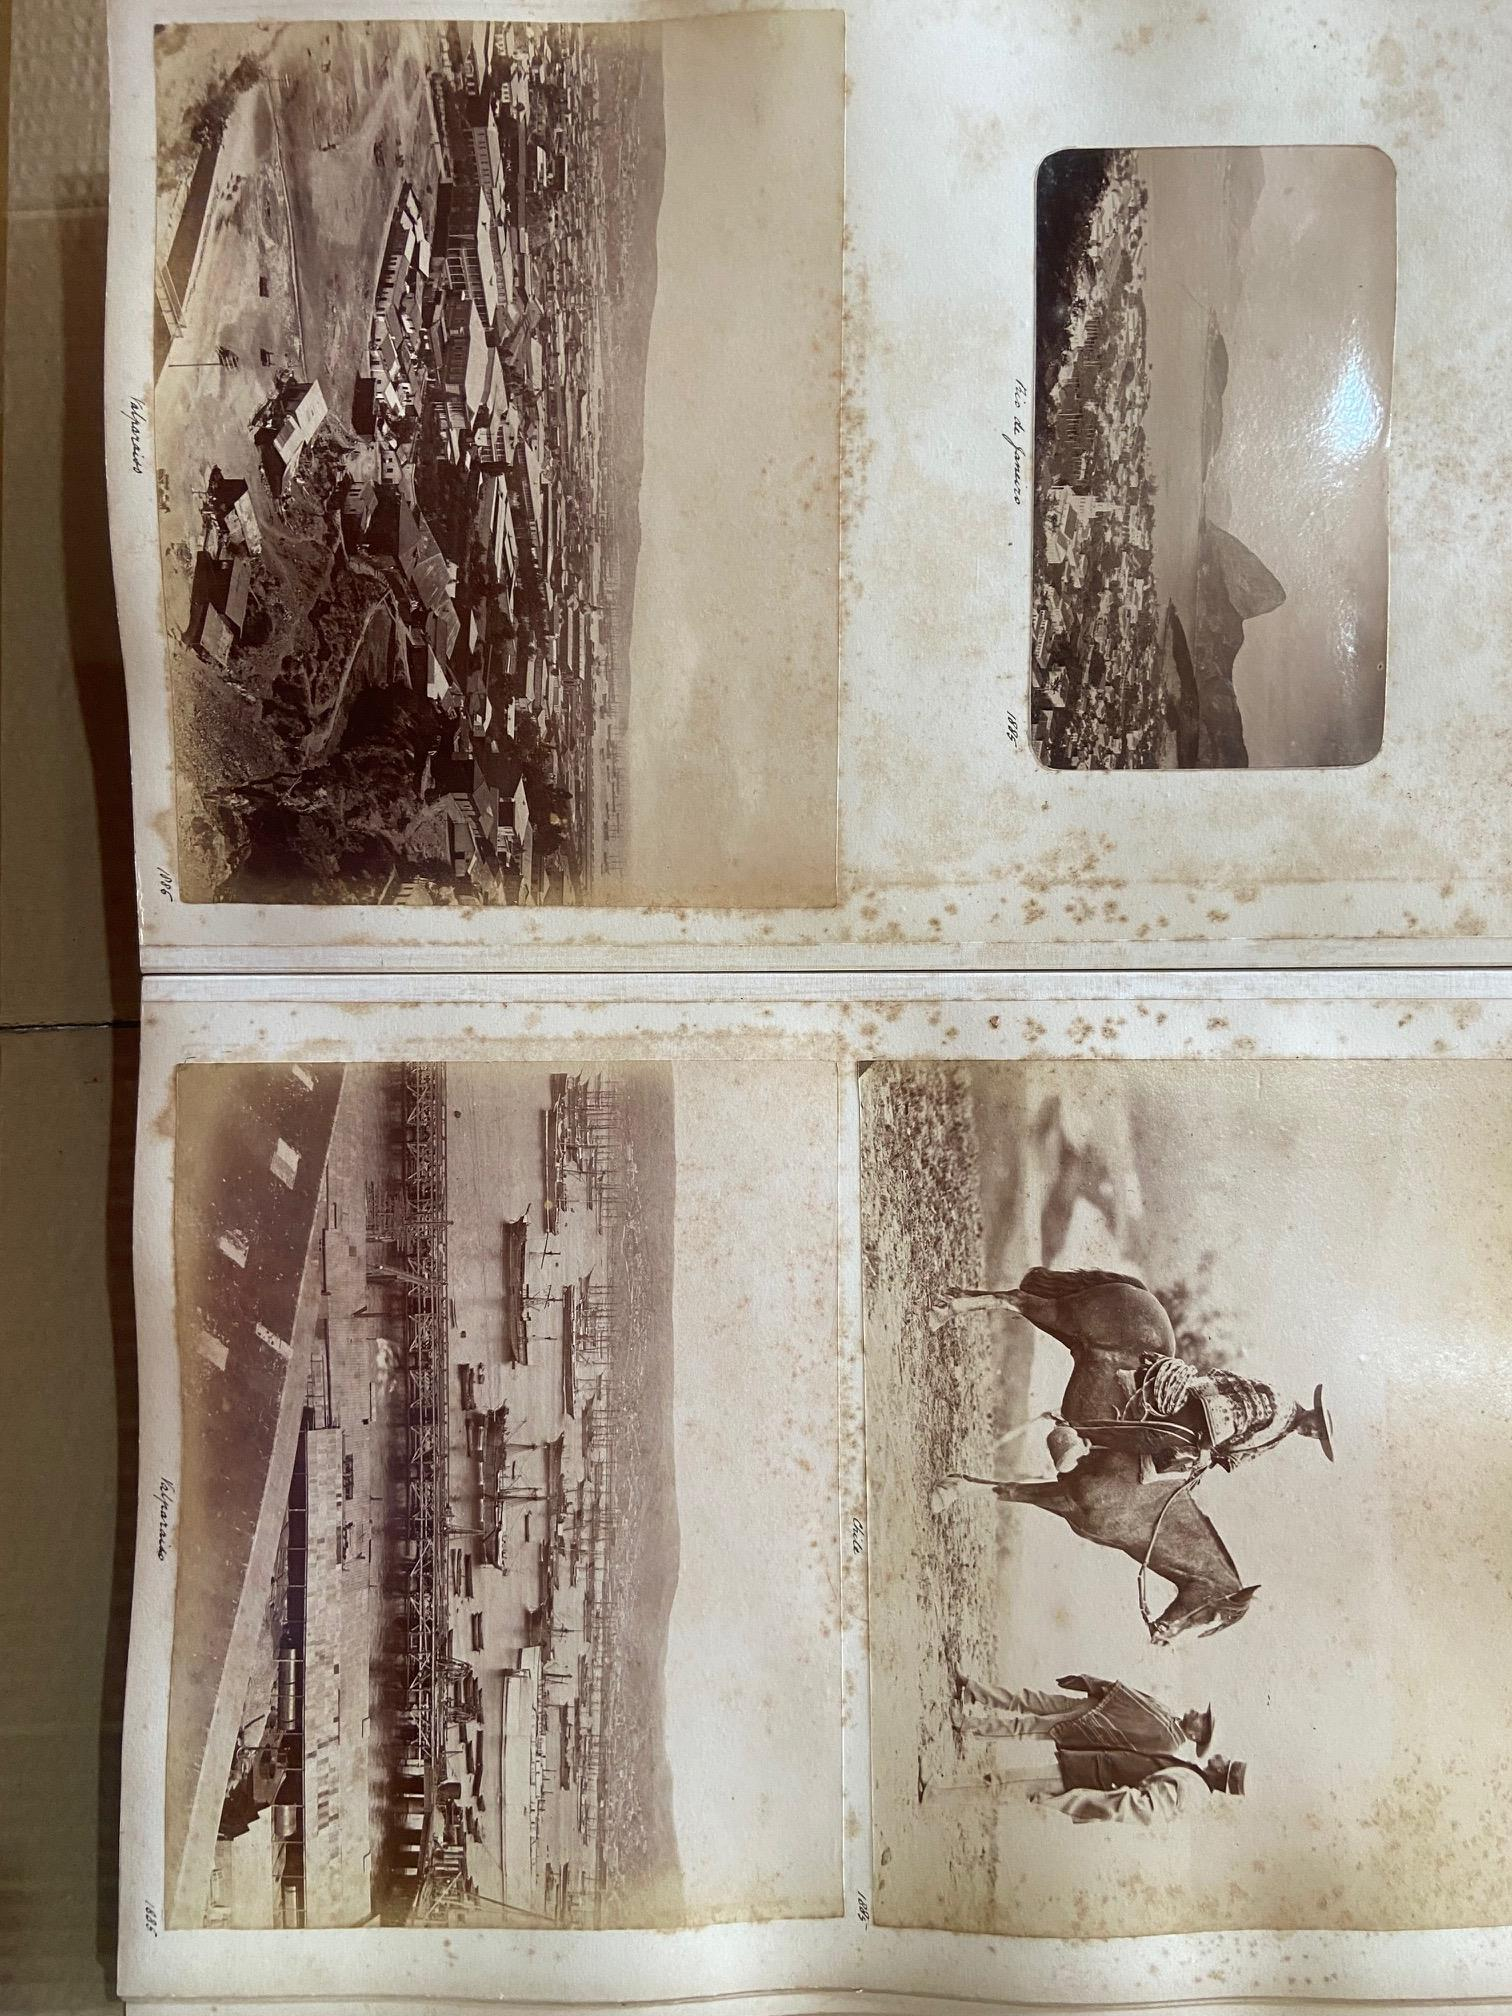 Photographs: Two large folio Albums of Photographs, each c. 1870 - 1890's. One Album contains - Image 23 of 31